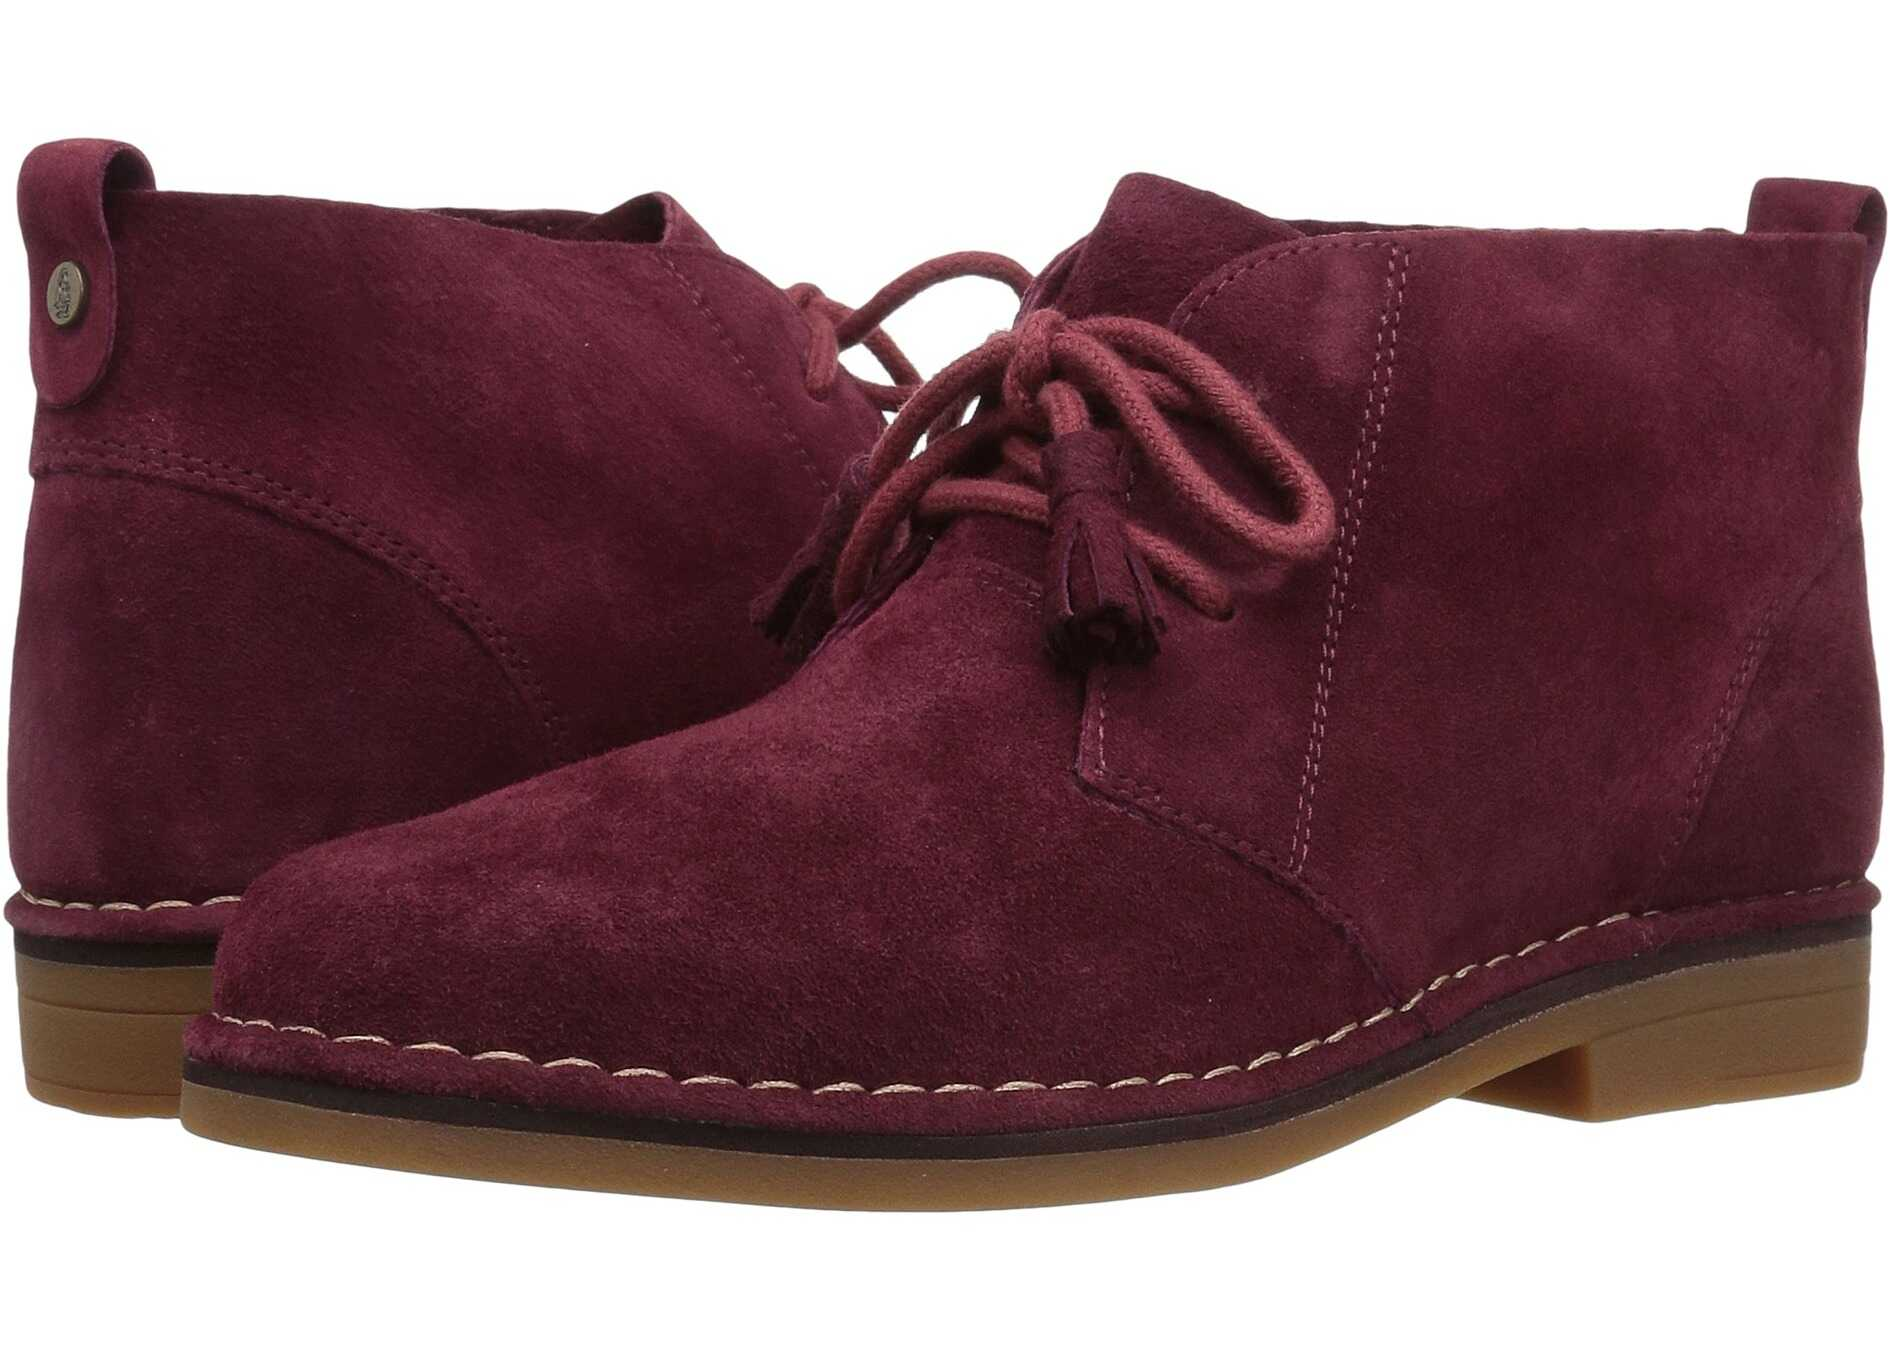 Hush Puppies Cyra Catelyn Burgundy Suede